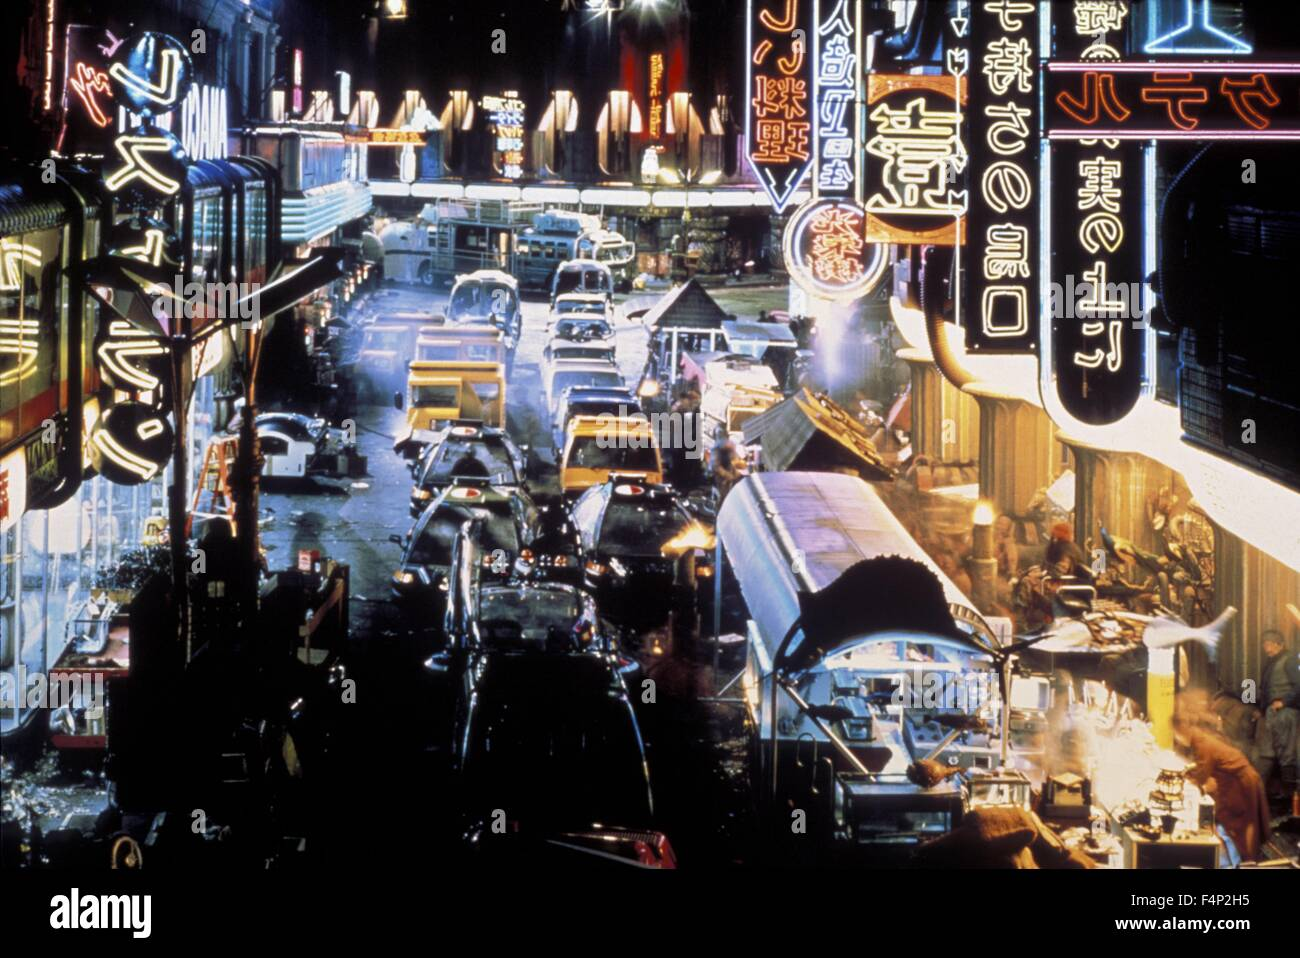 Blade Runner 1982 directed by Ridley Scott - Stock Image